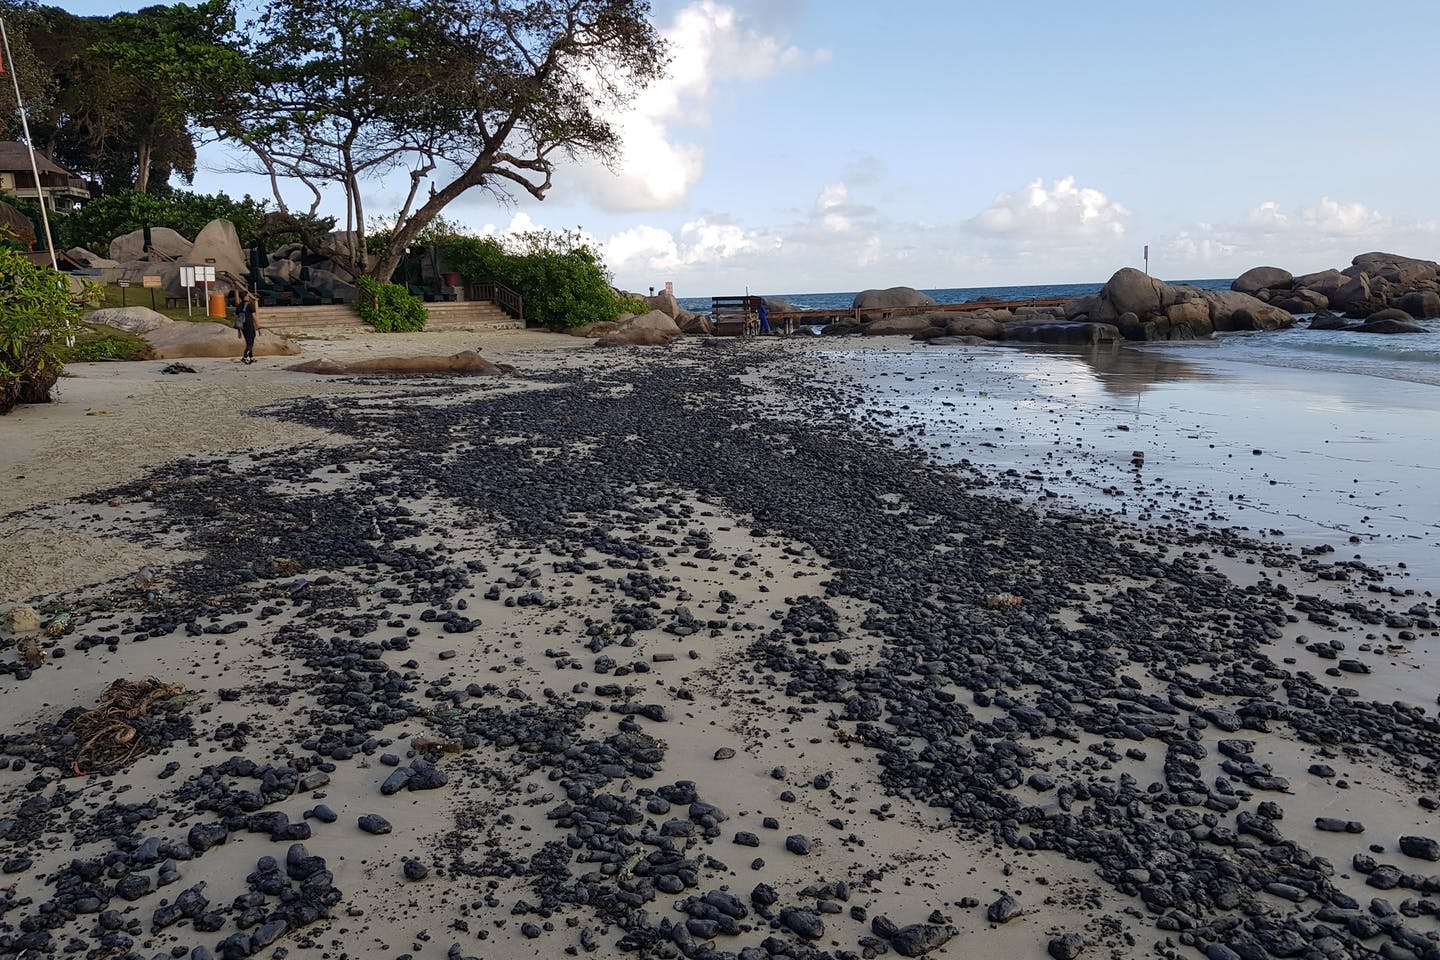 A beach covered in oily clumps in Bintan, Indonesia.